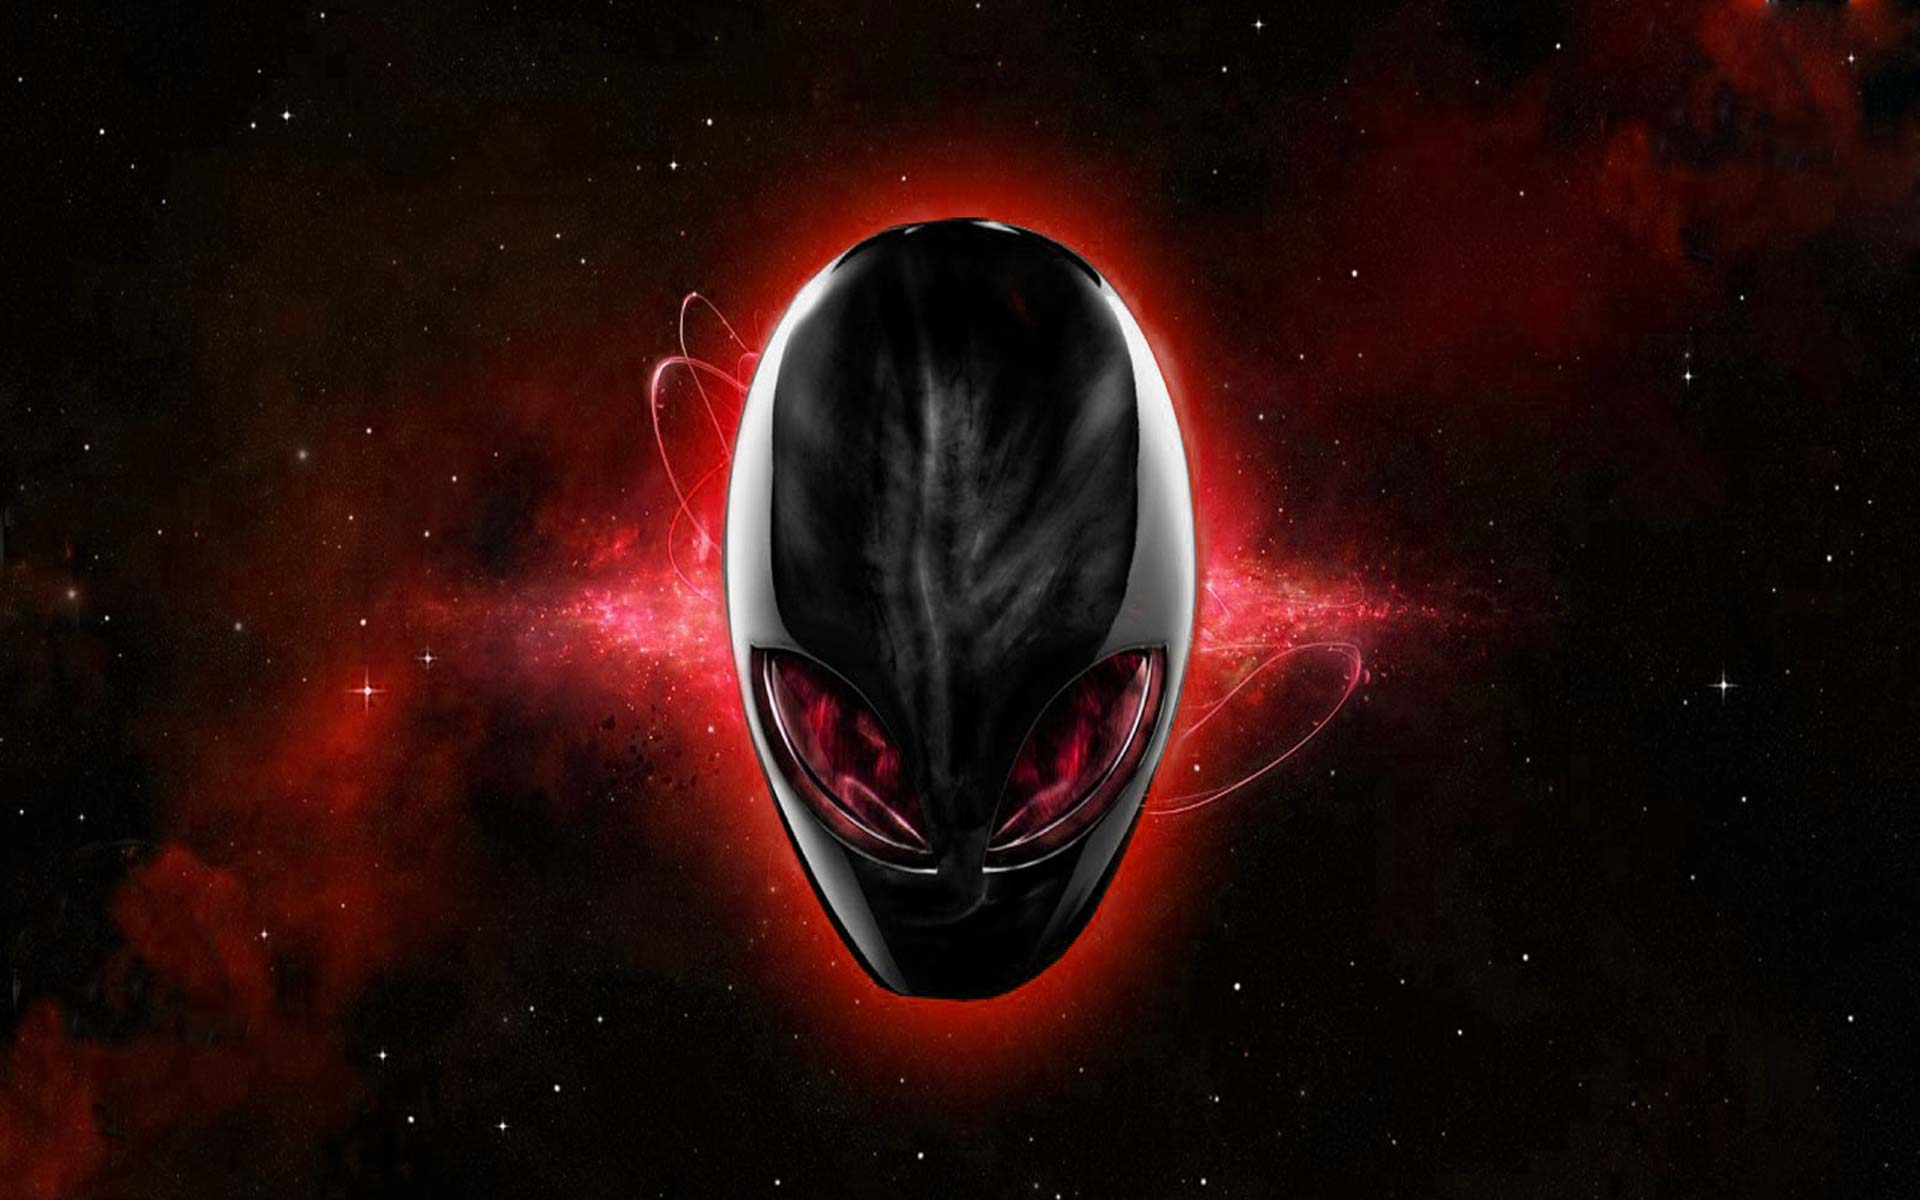 Alienware wallpaper android pictures 1920x1200 voltagebd Gallery